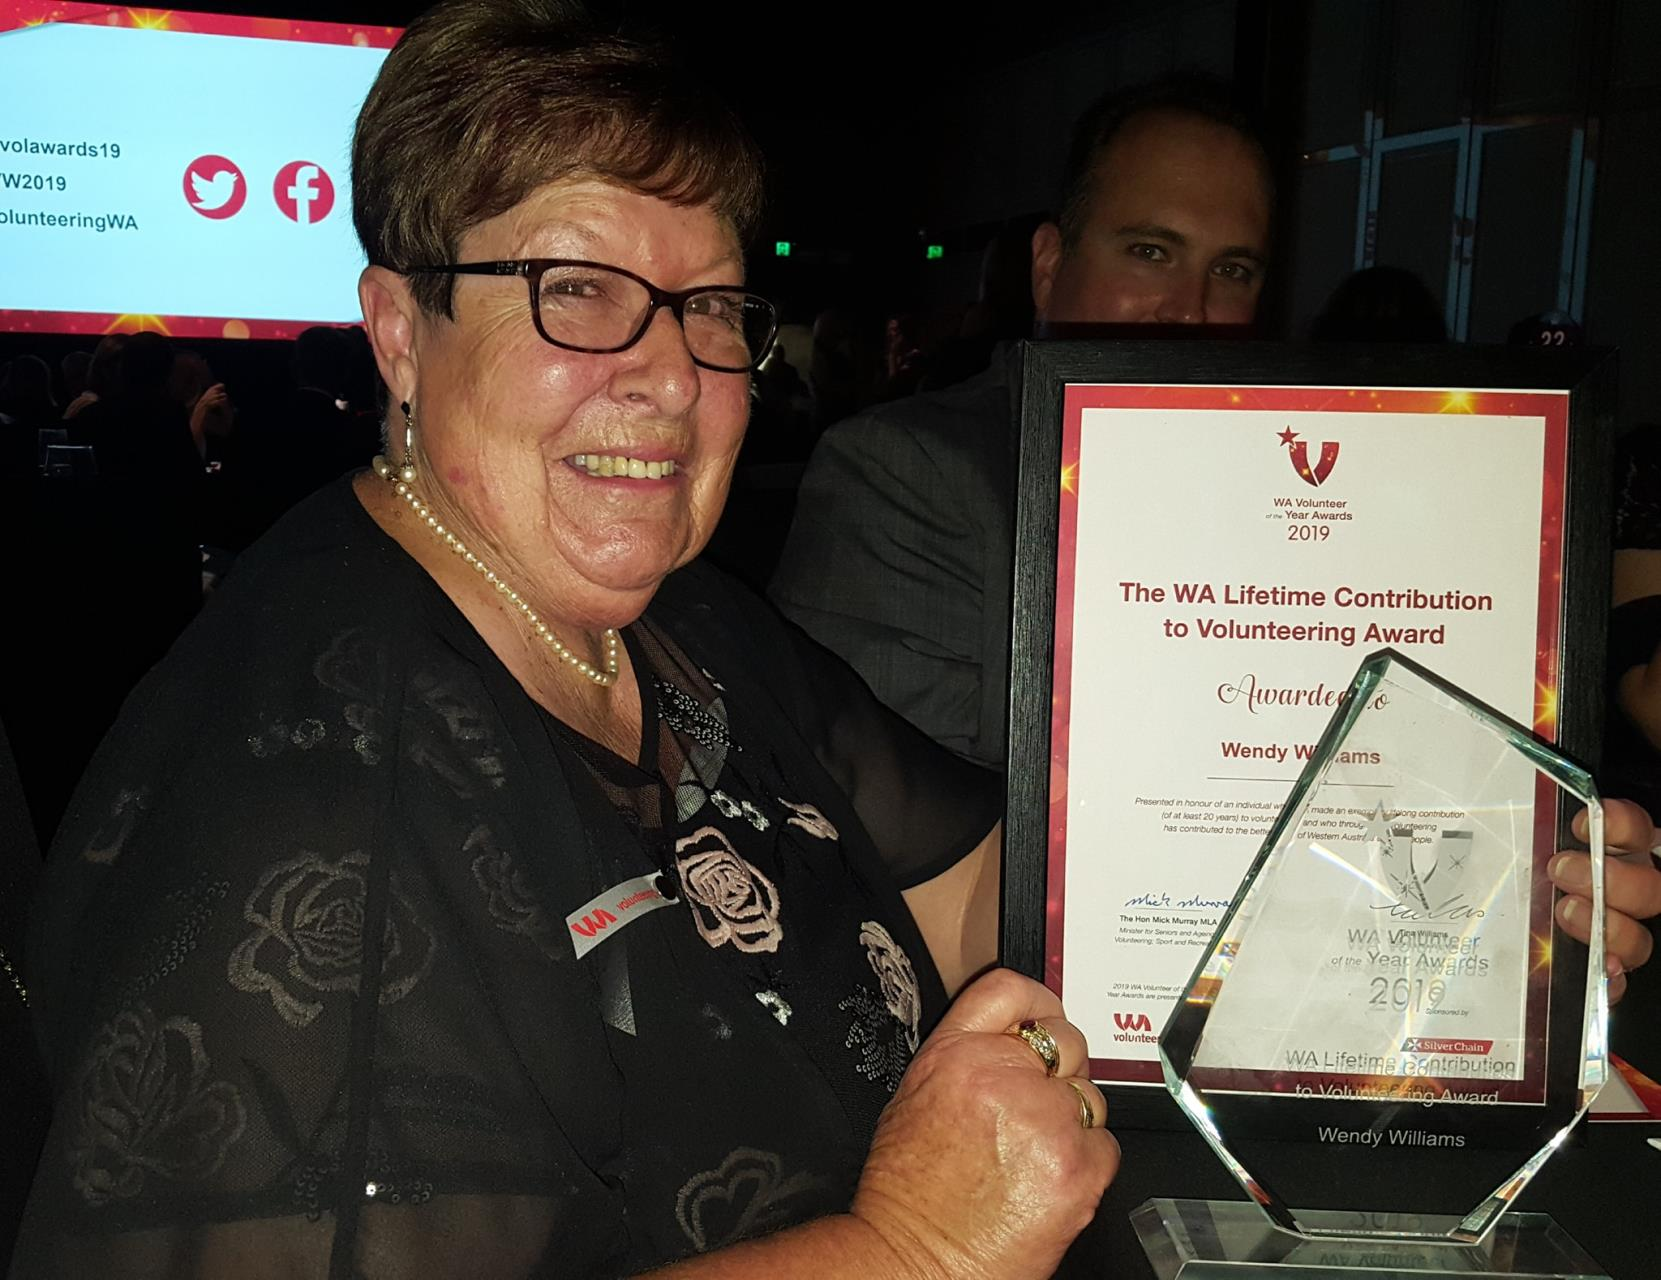 Wendy Williams receives WA Lifetime Contribution to Volunteering Award